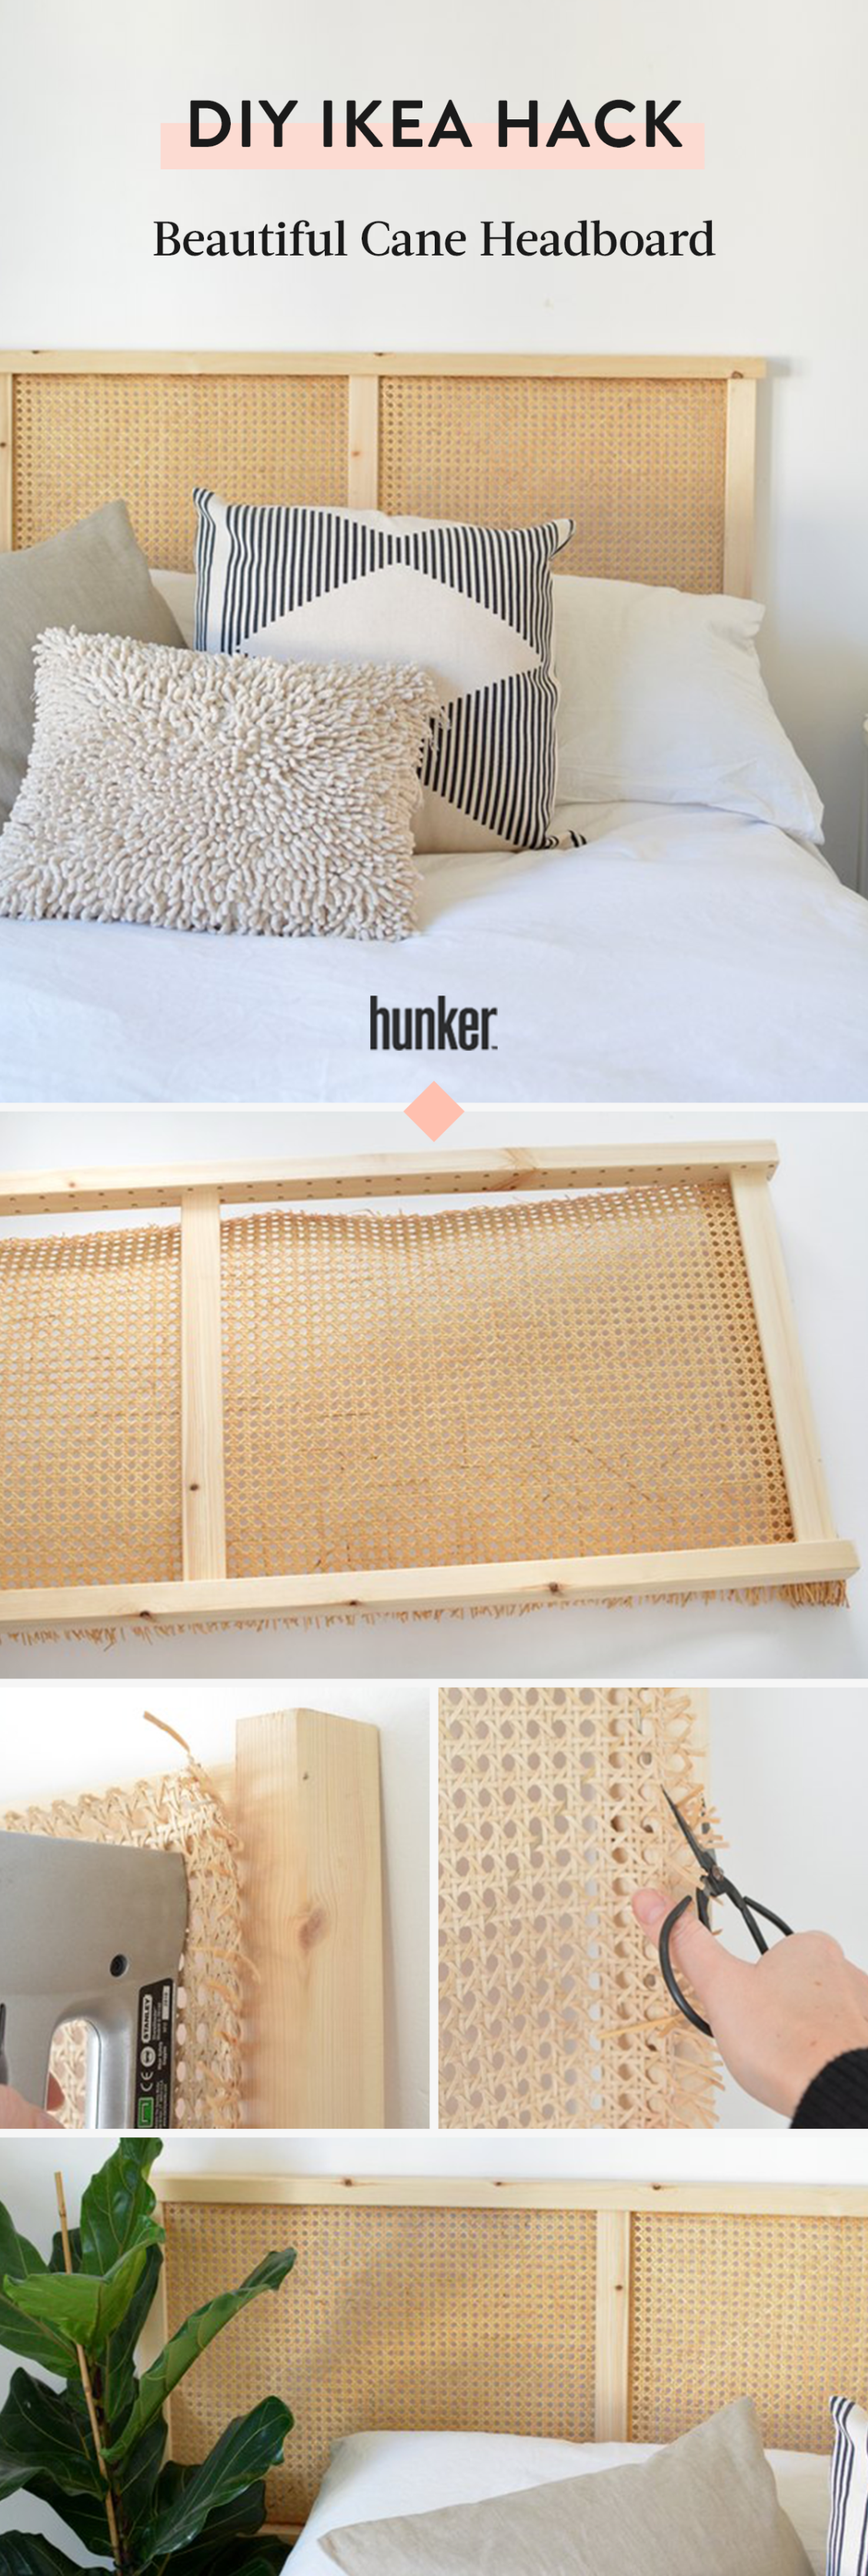 Photo of This Utilitarian IKEA Piece Gets Transformed Into a Beautiful Cane Headboard | Hunker